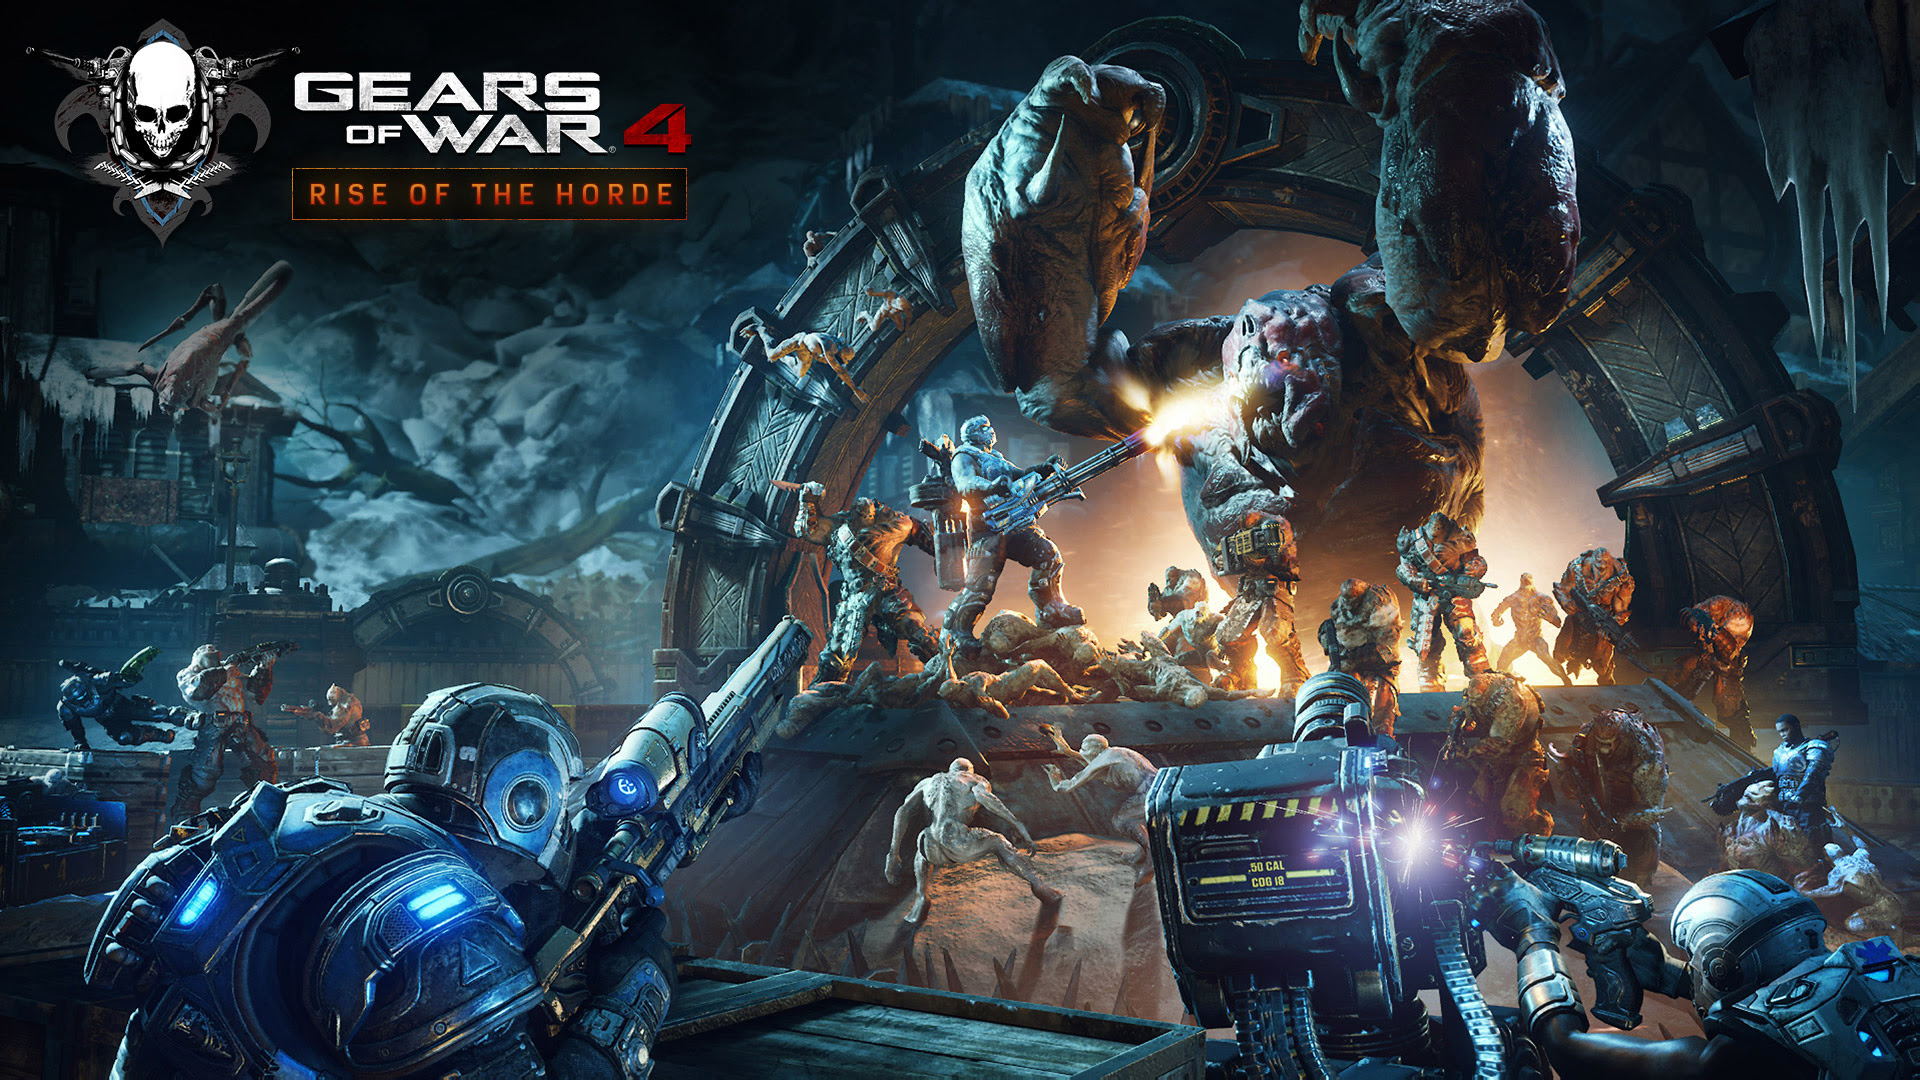 Gears of War 4 is getting a Horde update and a 10-hour trial soon screenshot